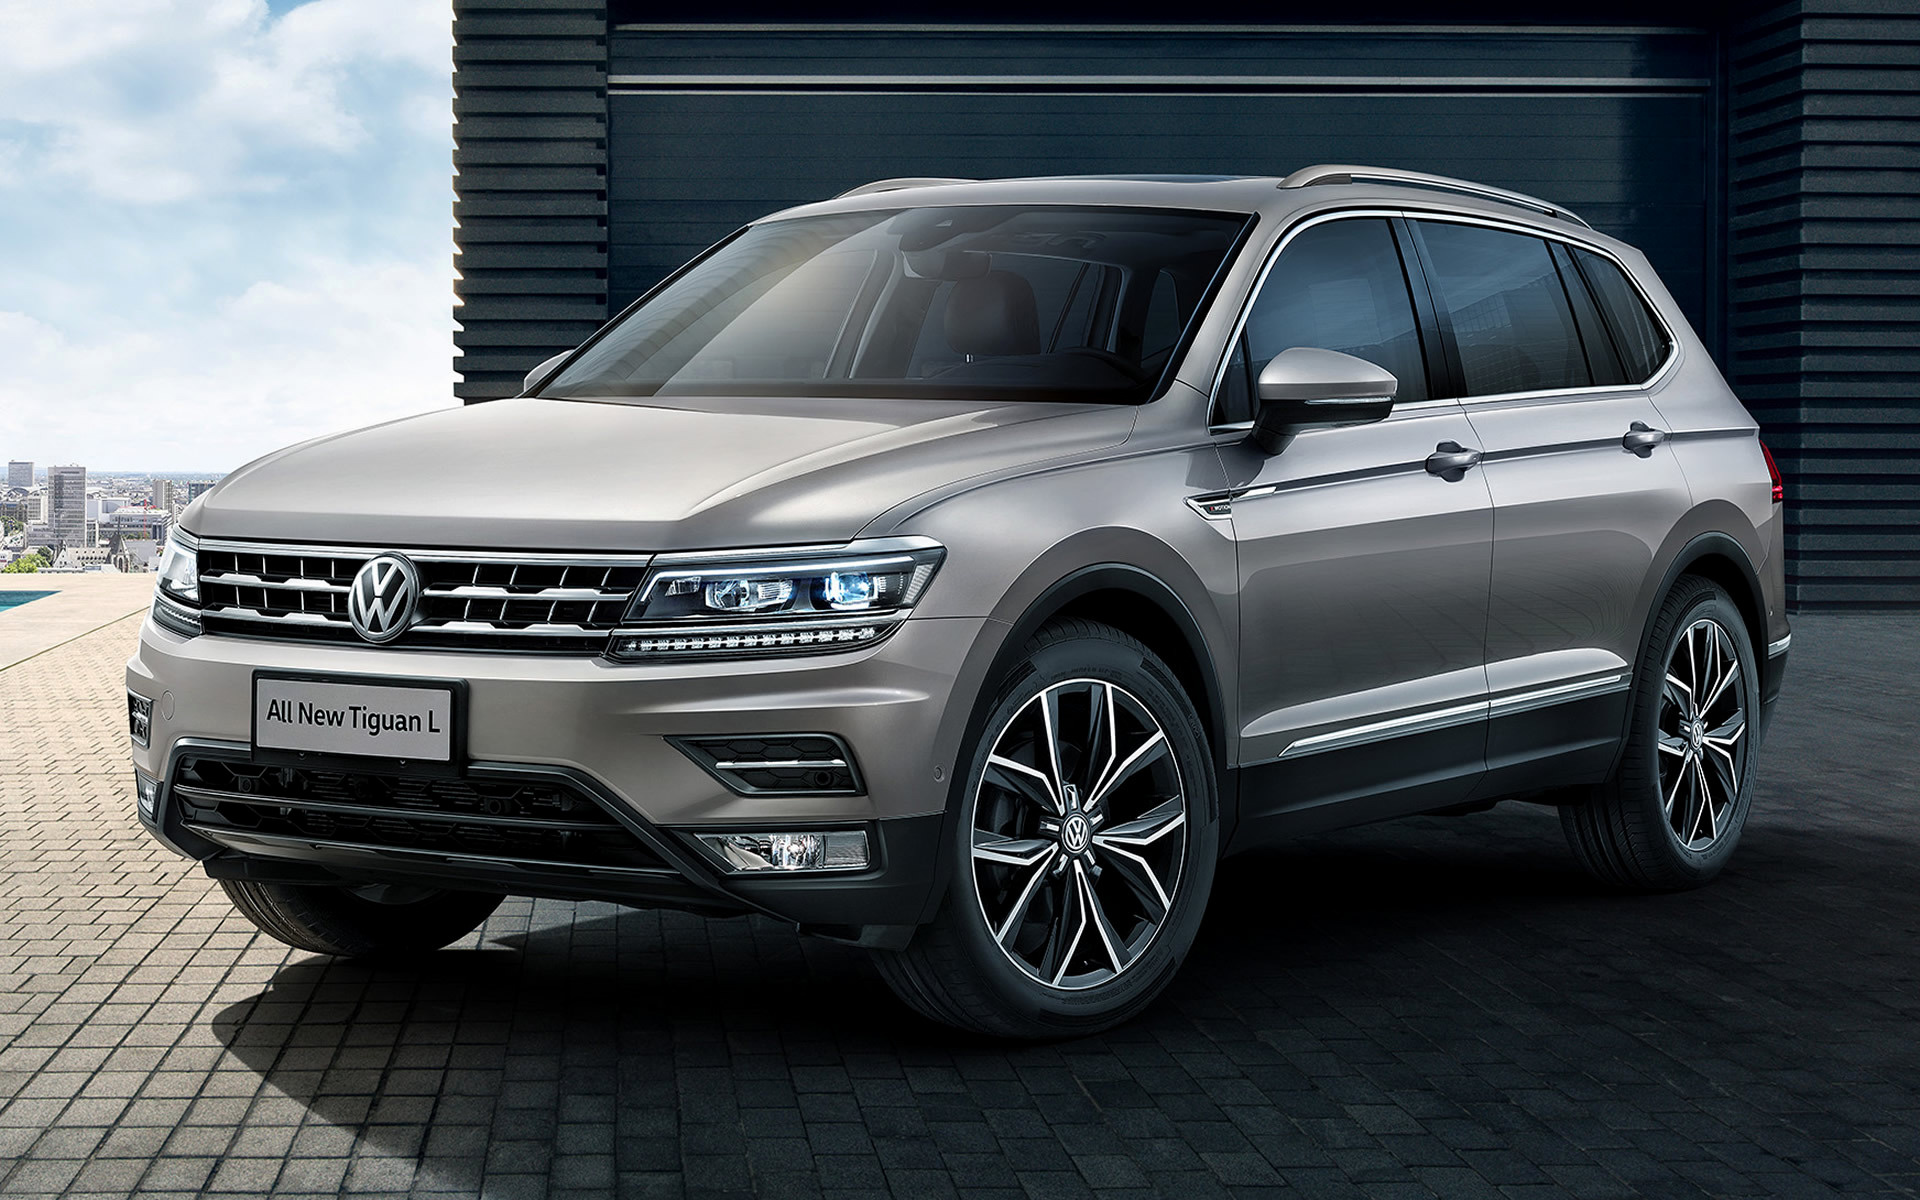 2017 Volkswagen Tiguan L (CN) - Wallpapers and HD Images ...